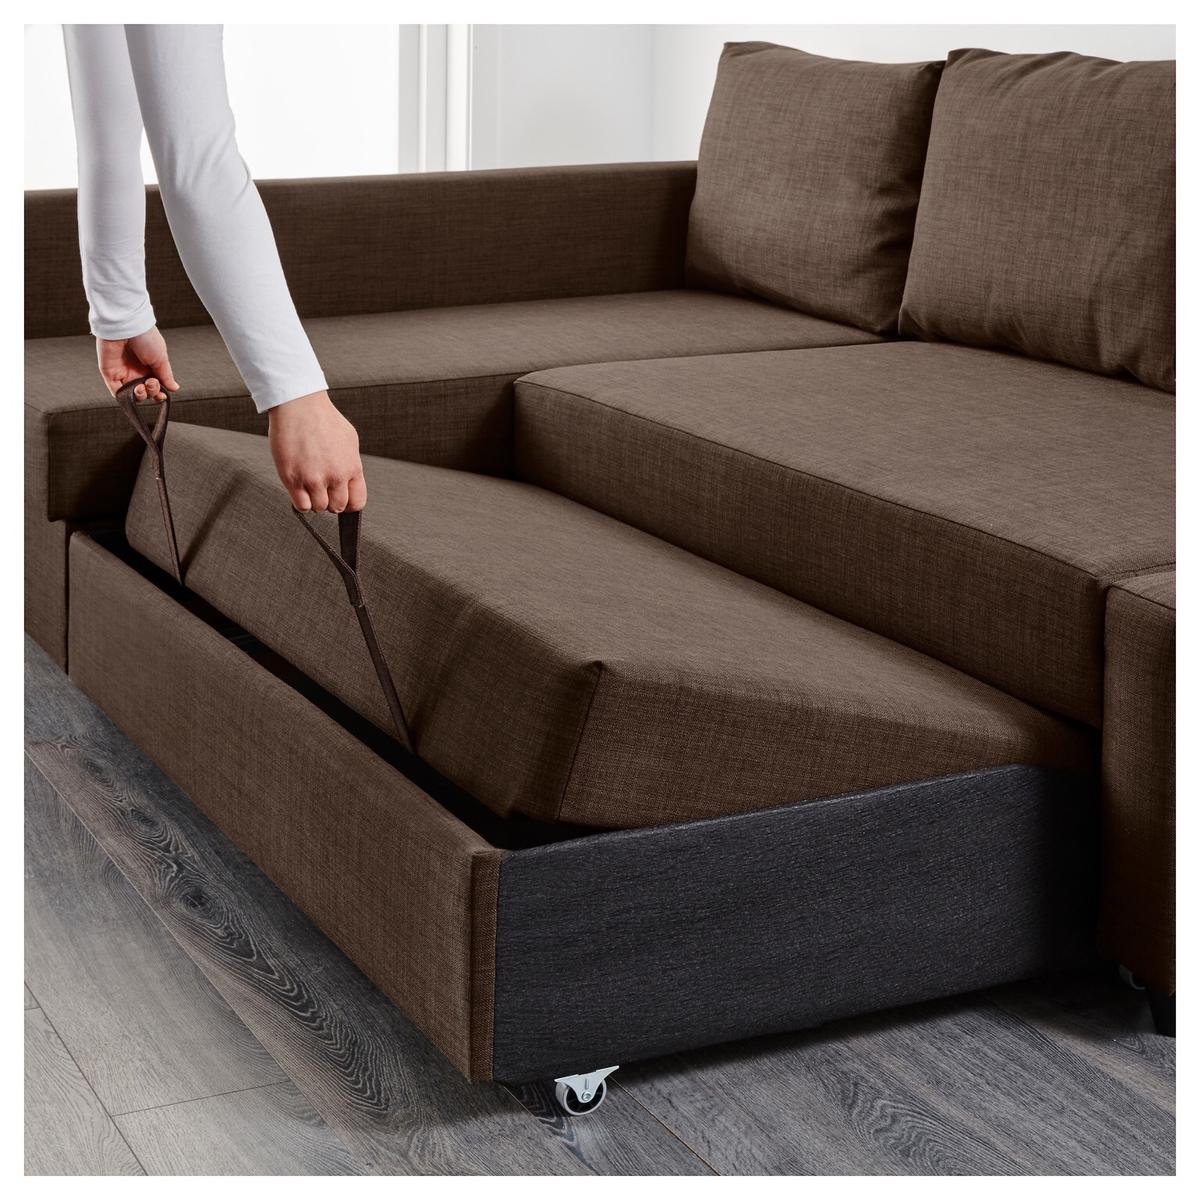 Awesome Friheten Sofa Bed Measurements Friheten Three Seat Sofa Bed Caraccident5 Cool Chair Designs And Ideas Caraccident5Info